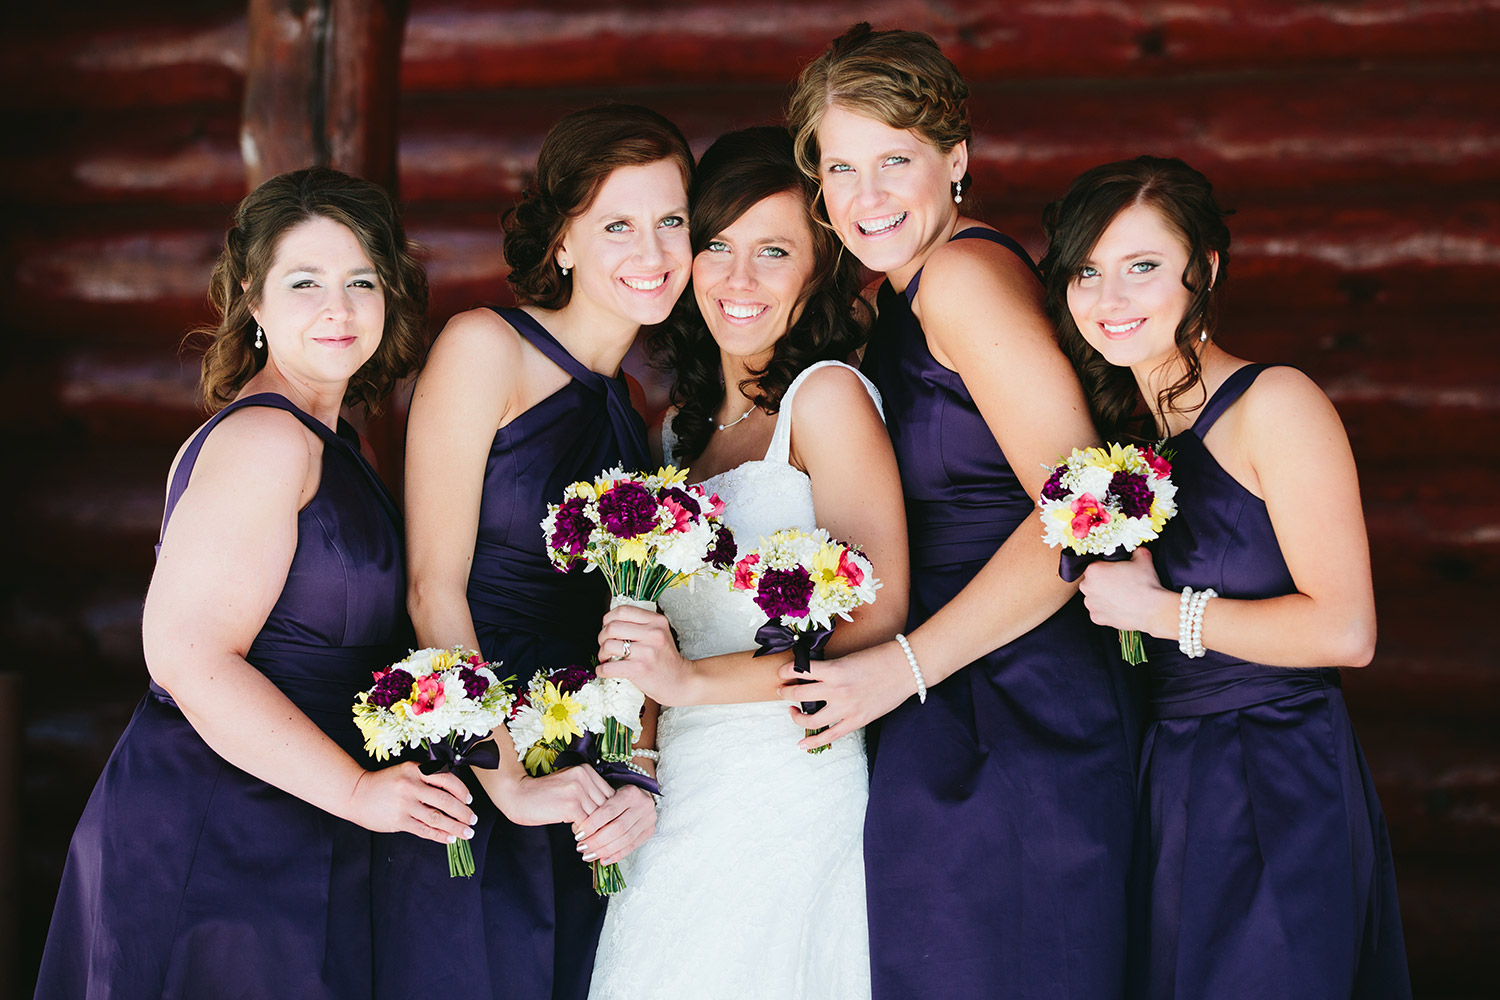 crosslake, mn wedding at whitefish lodge and suites